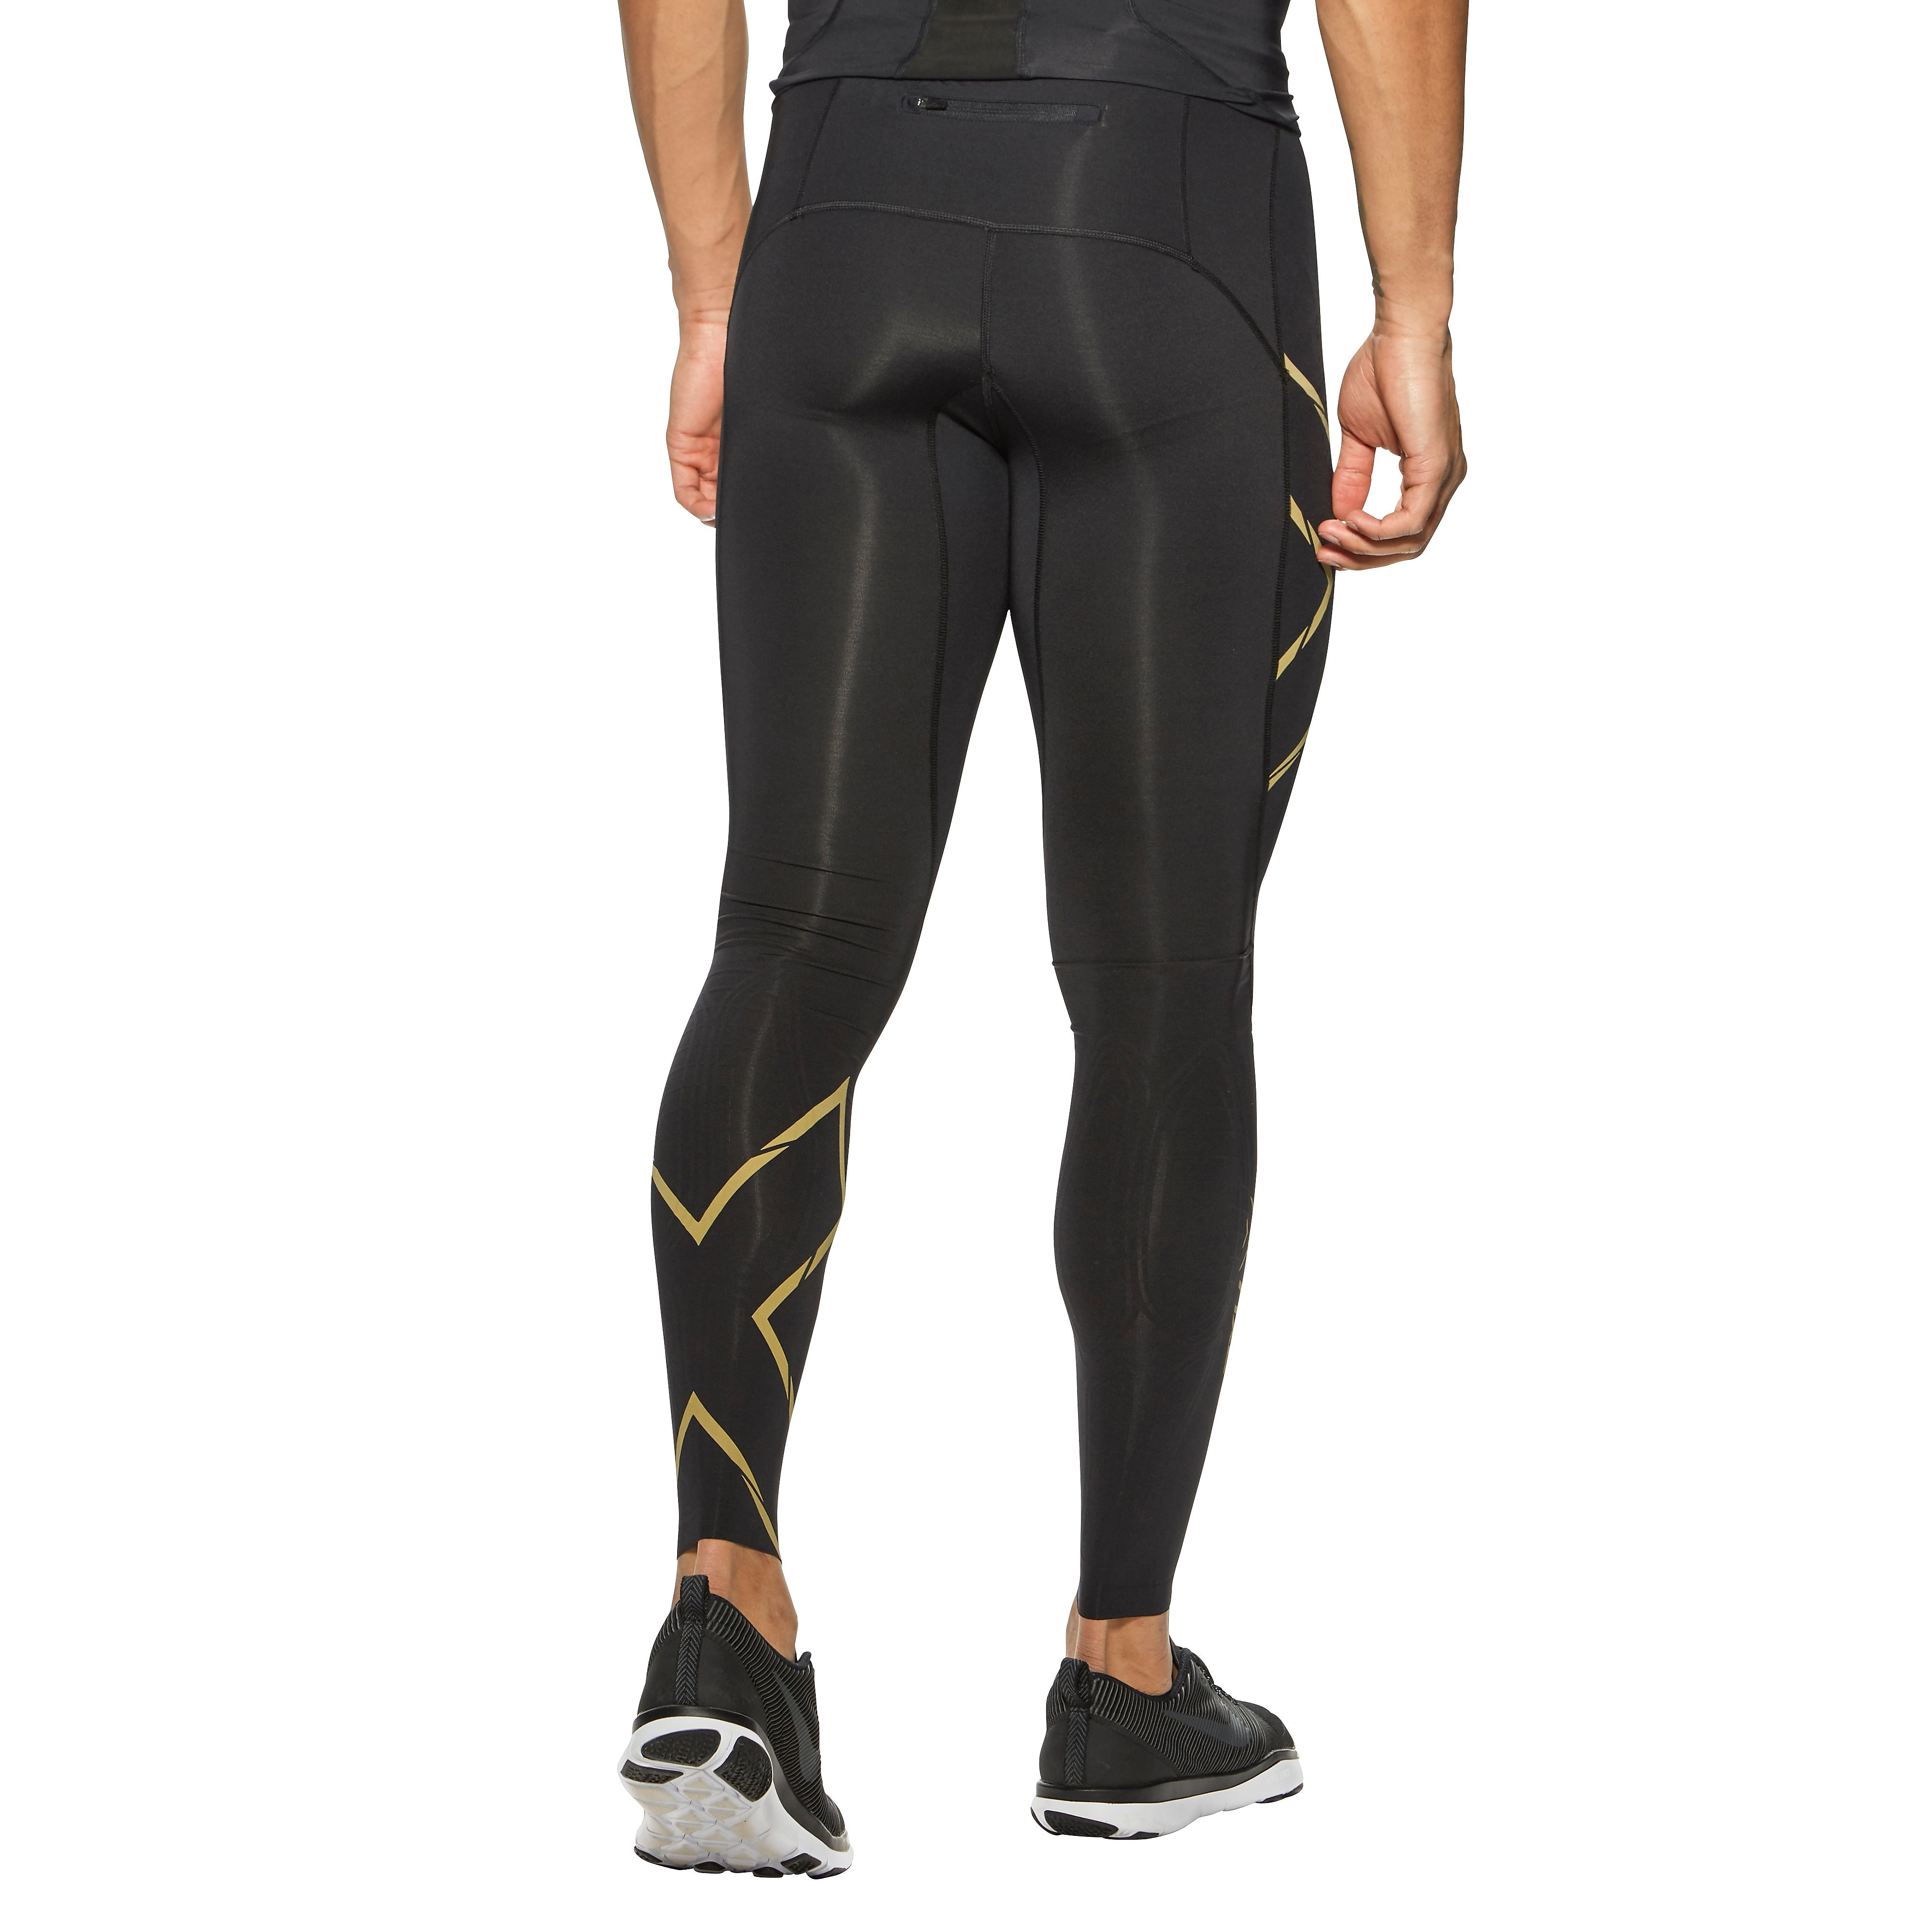 2XU Elite MCS Men's Run Compression Tights G2